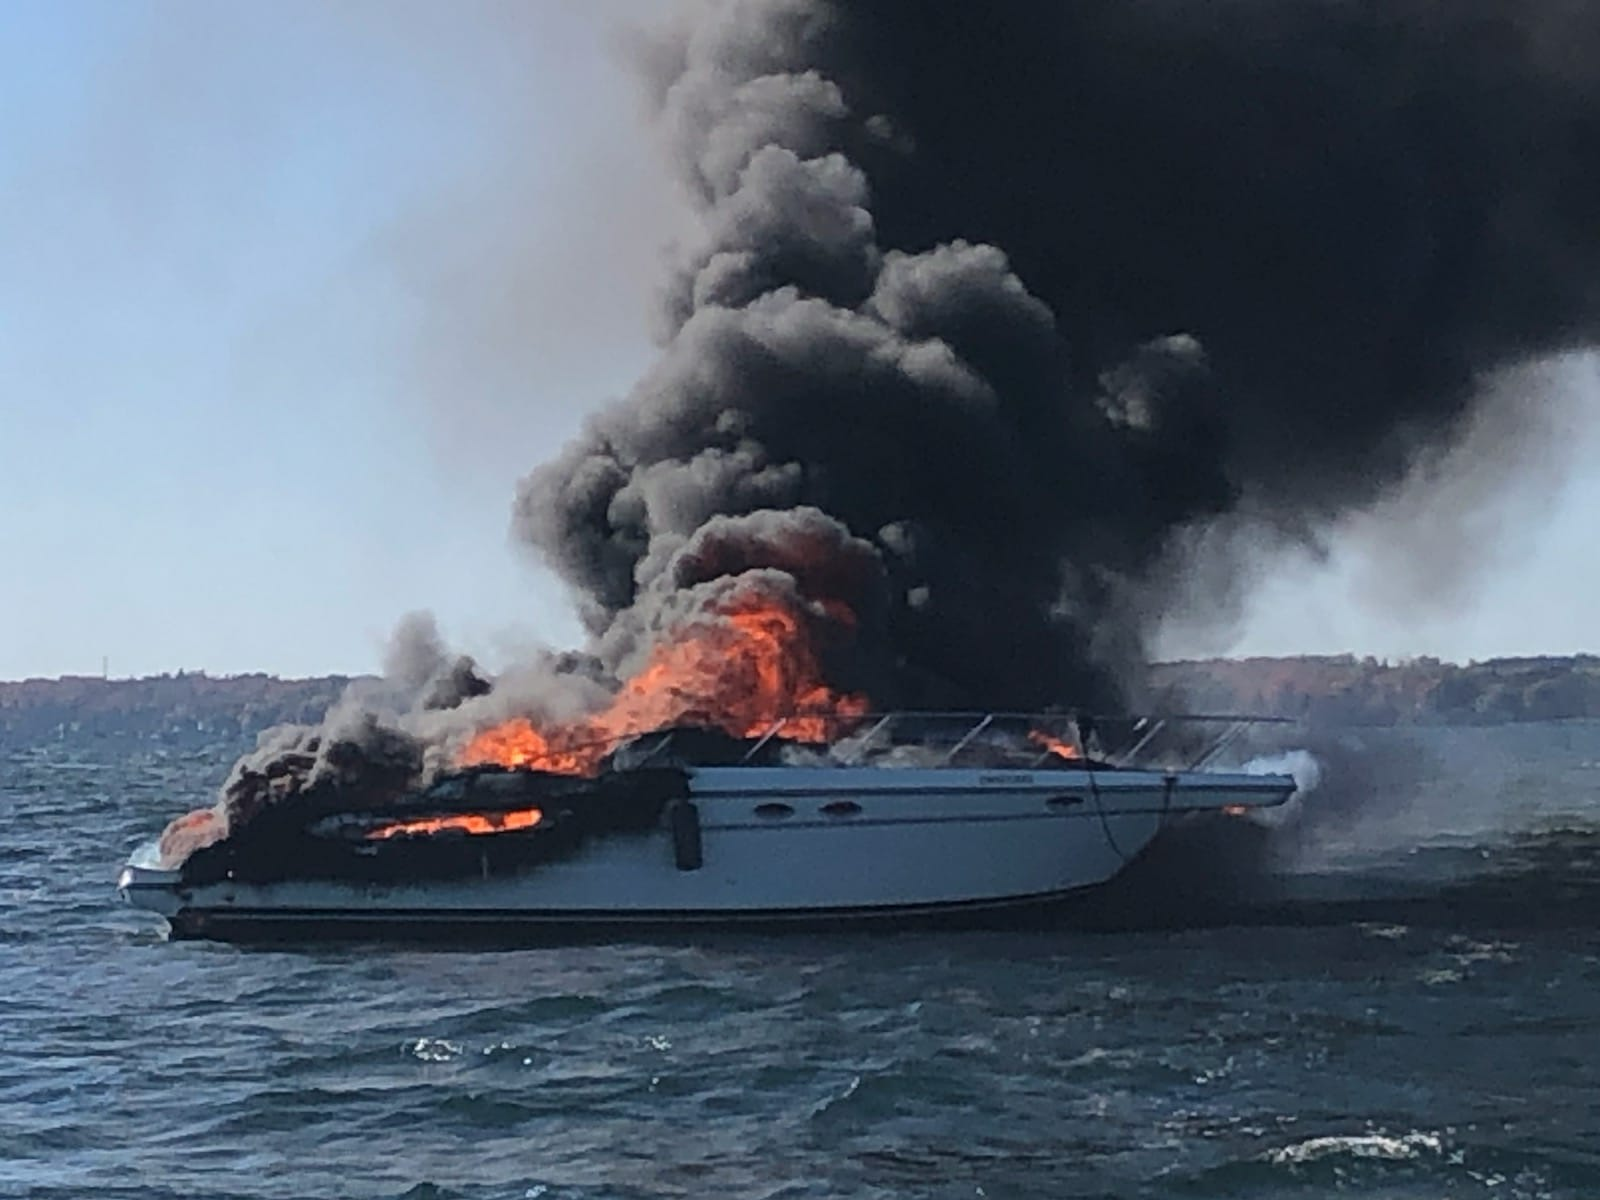 Electrical issue led to boat fire on Lake Simcoe